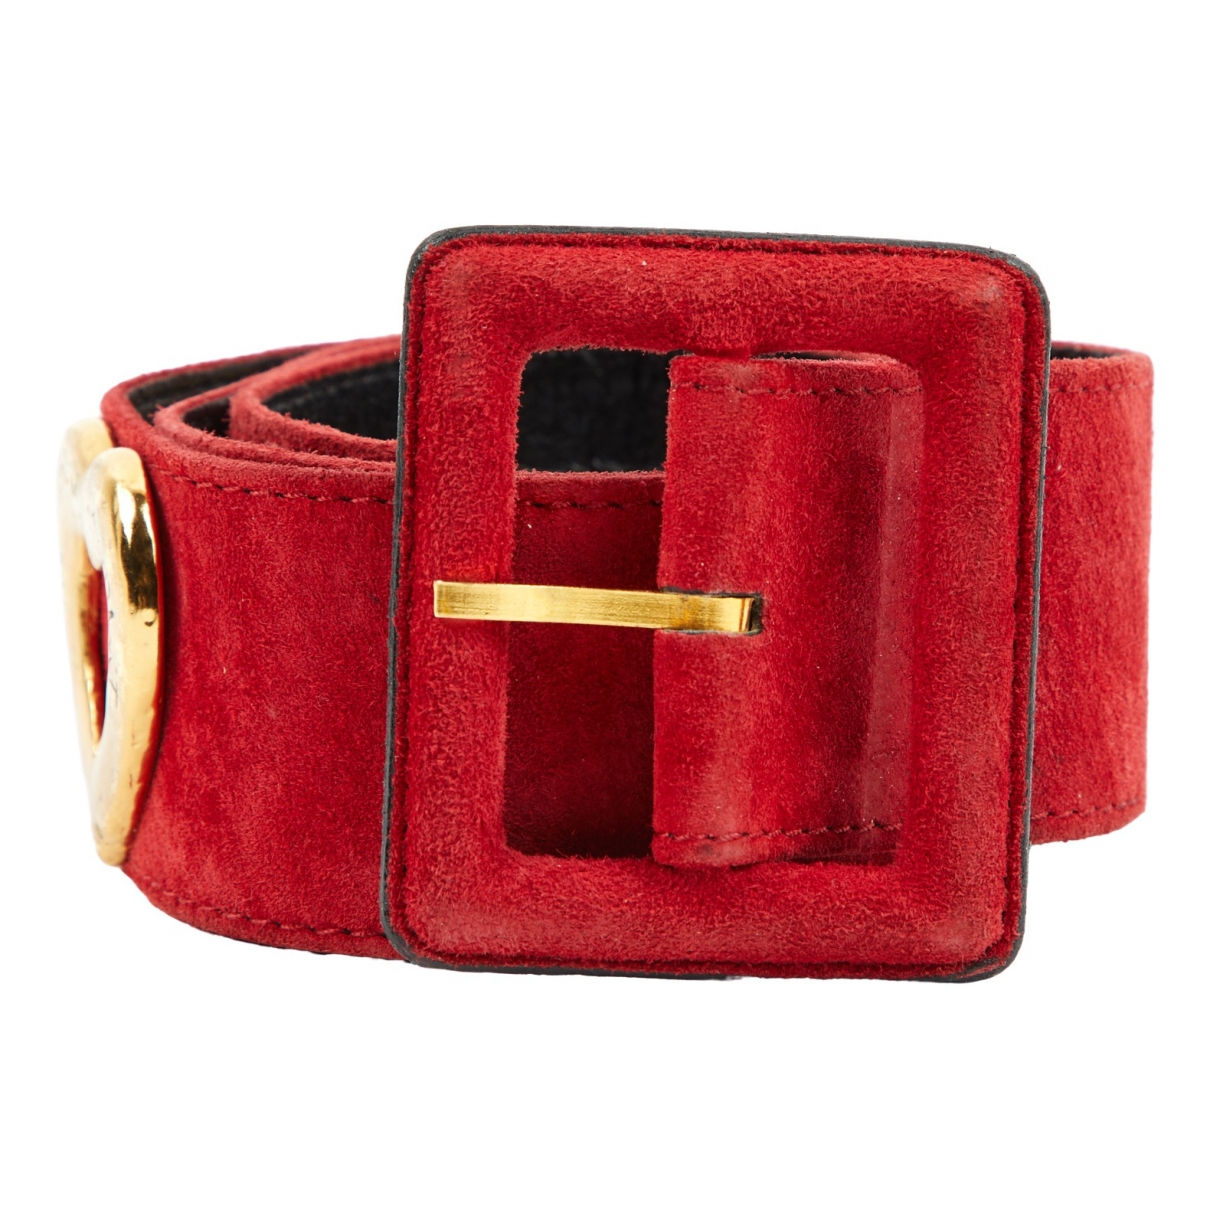 Yves Saint Laurent \N Red Suede belt for Women 80 cm